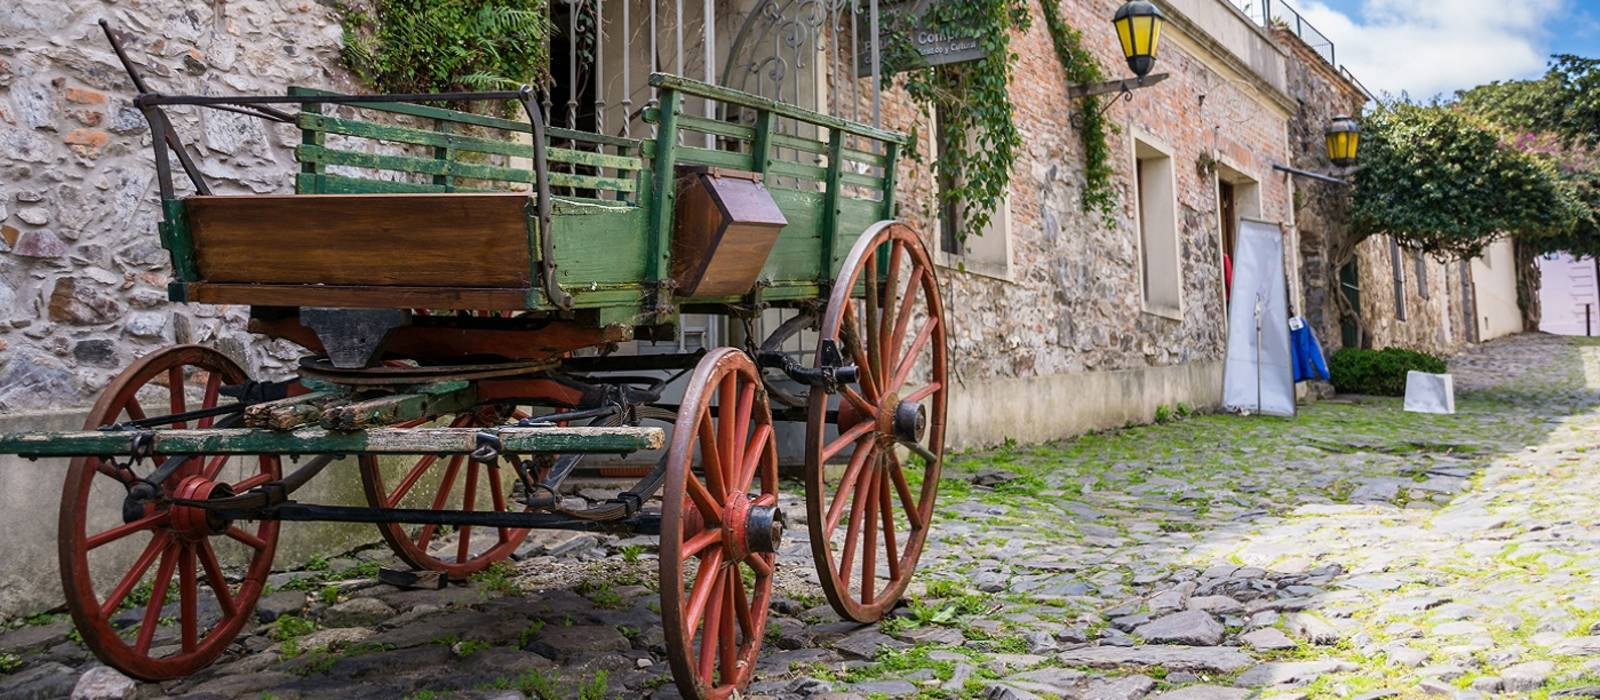 history of Uruguay - Enchanting Travels Uruguay Tours COLONIA DEL SACRAMENTO